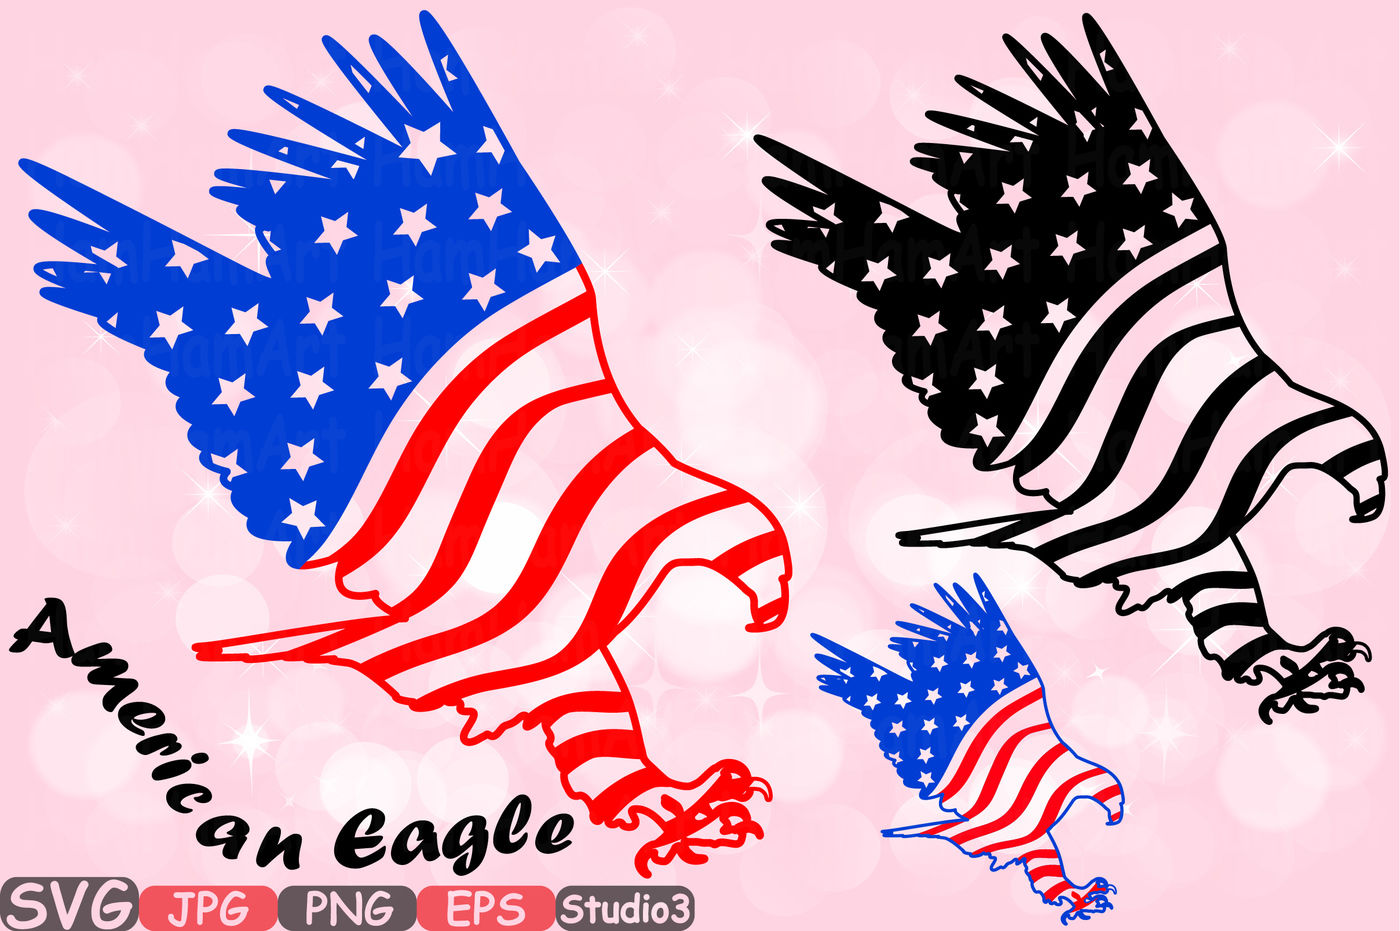 Eagle with American Flag Clipart - Clip Art Bay